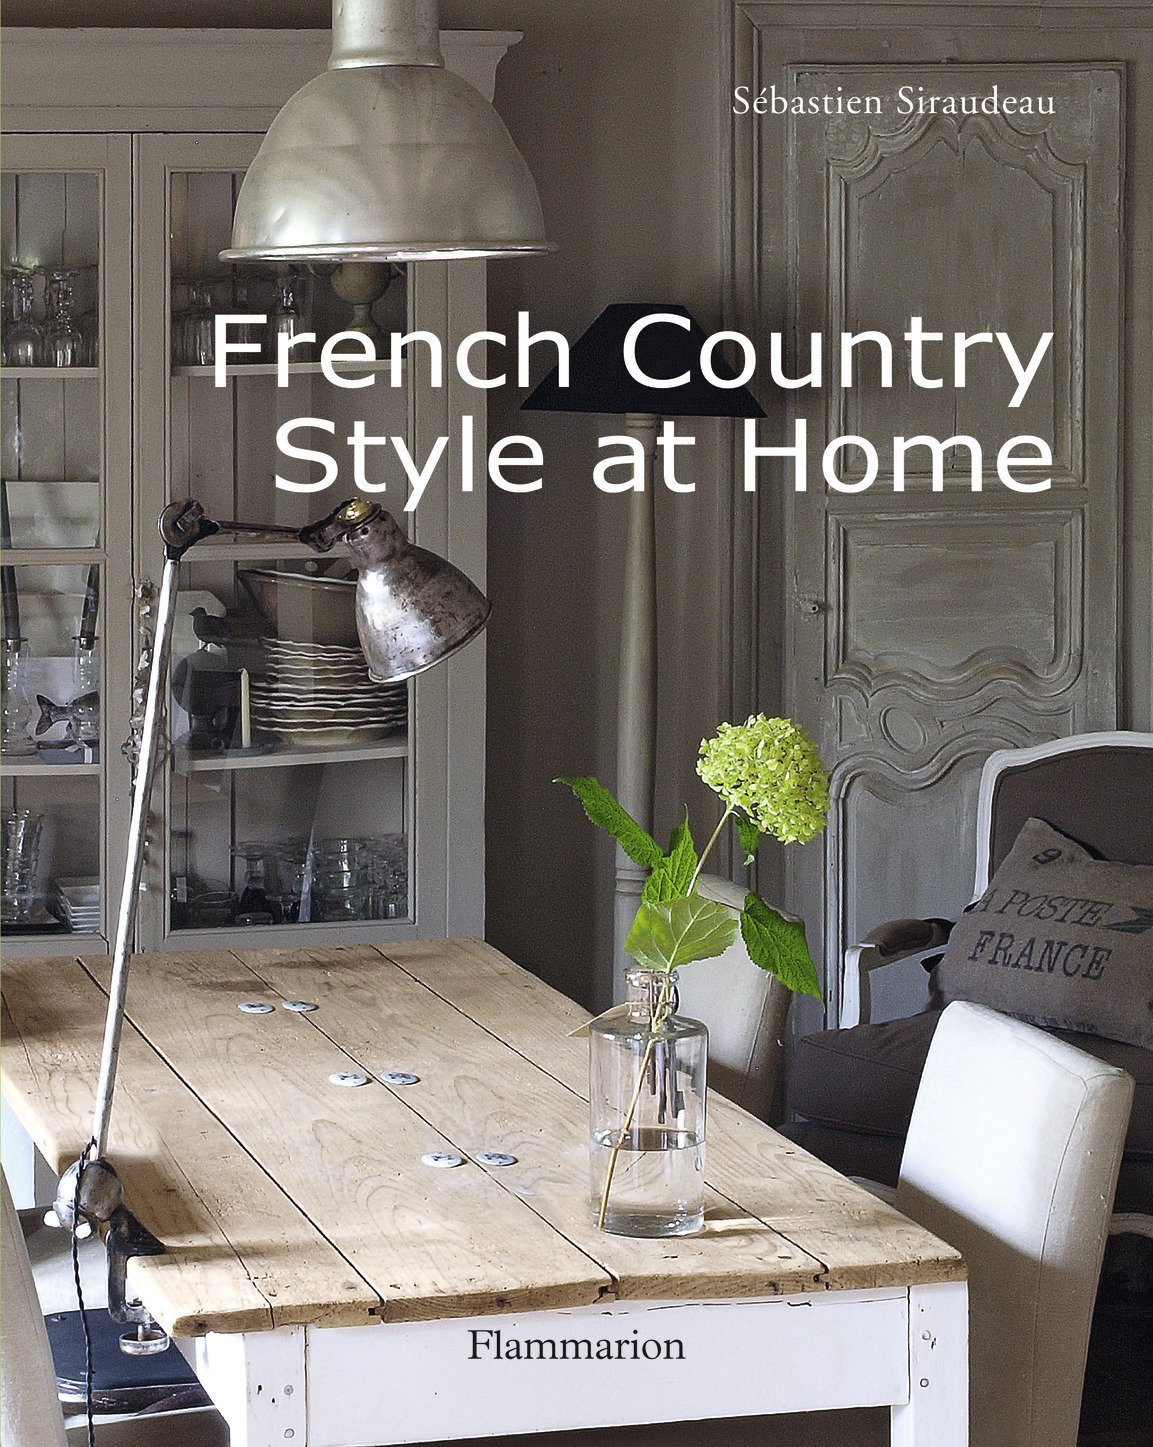 Country style home interiors - French Country Style At Home Sebastien Siraudeau 9782080301345 Amazon Com Books